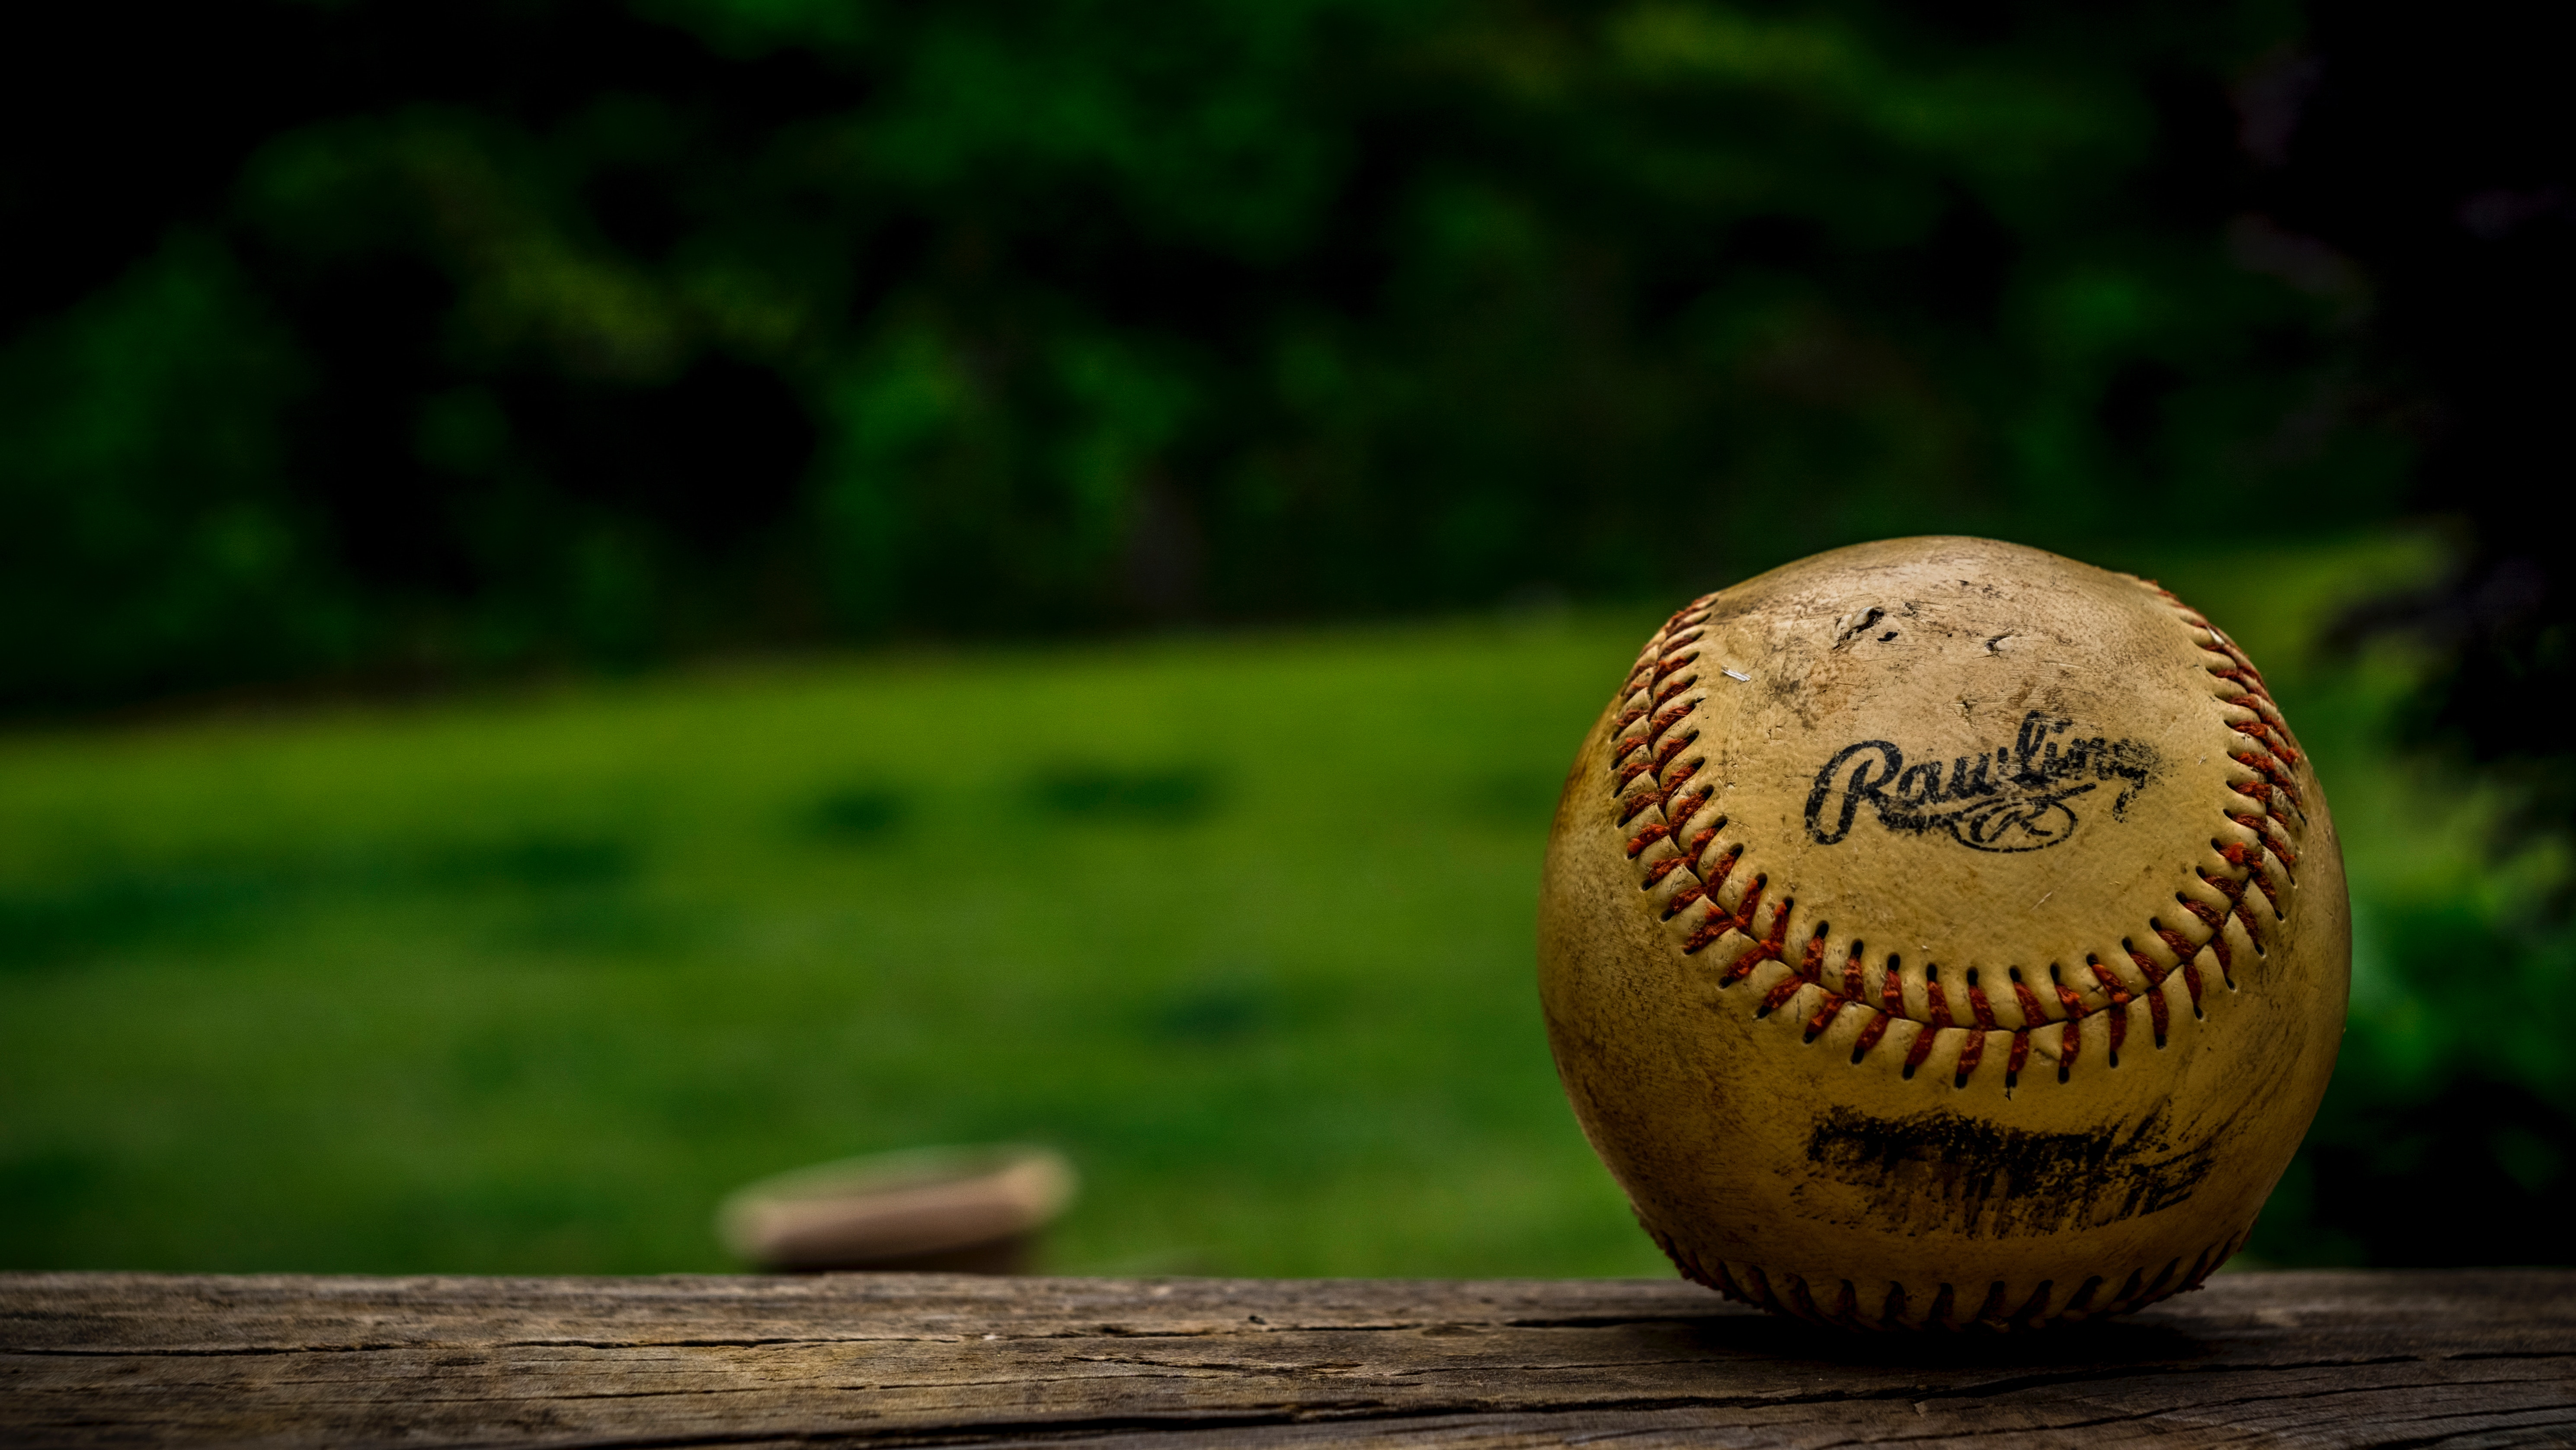 SPORTS: Elliot Lake Mixed Slo-Pitch League scores for July 22nd, 2019